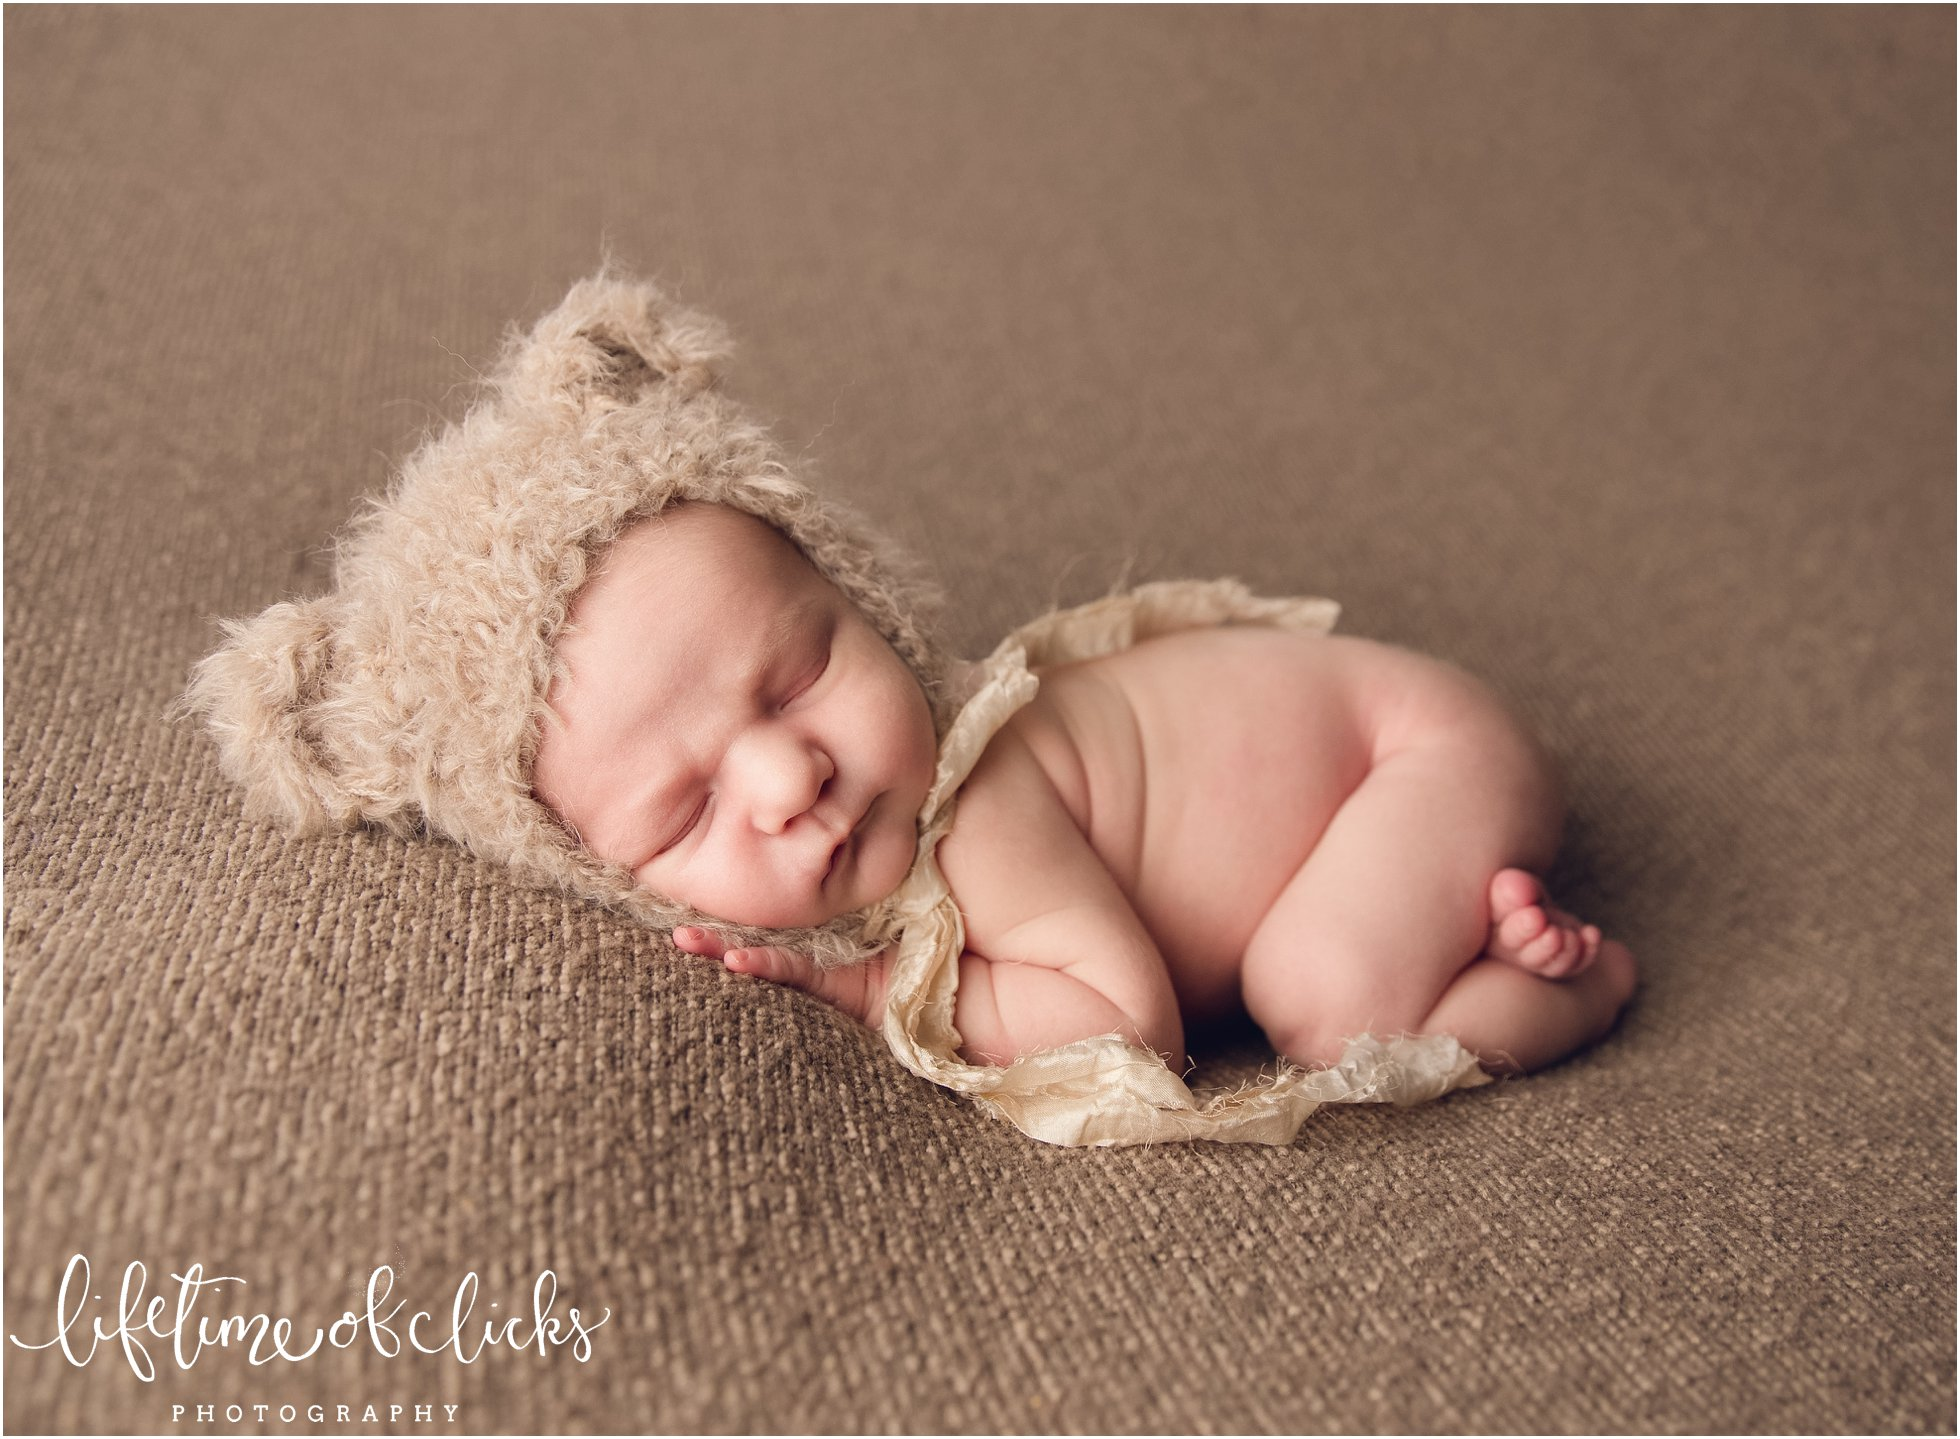 Newborn in bear hat | Photo by Lifetime of Clicks Photography